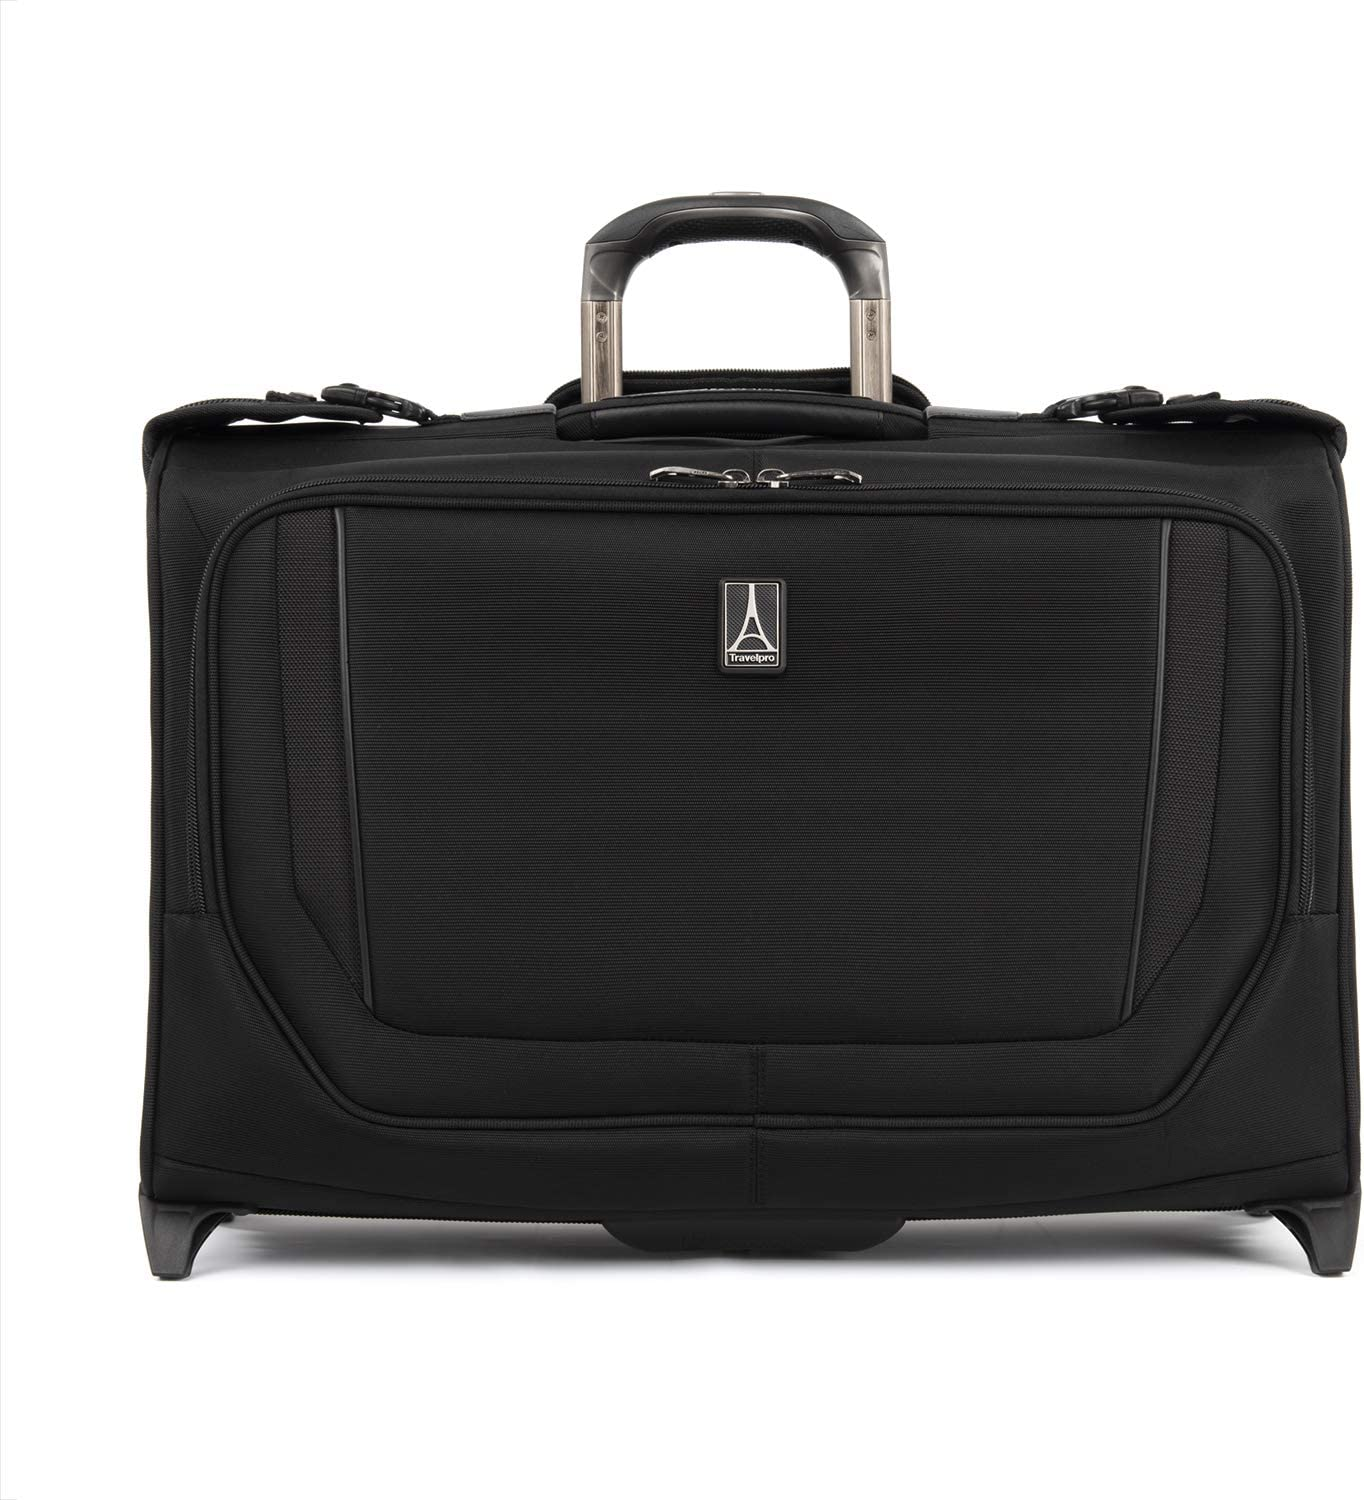 Travelpro Crew Versapack Carry-on Rolling Bag Jet Direct stock discount Garment Black Factory outlet